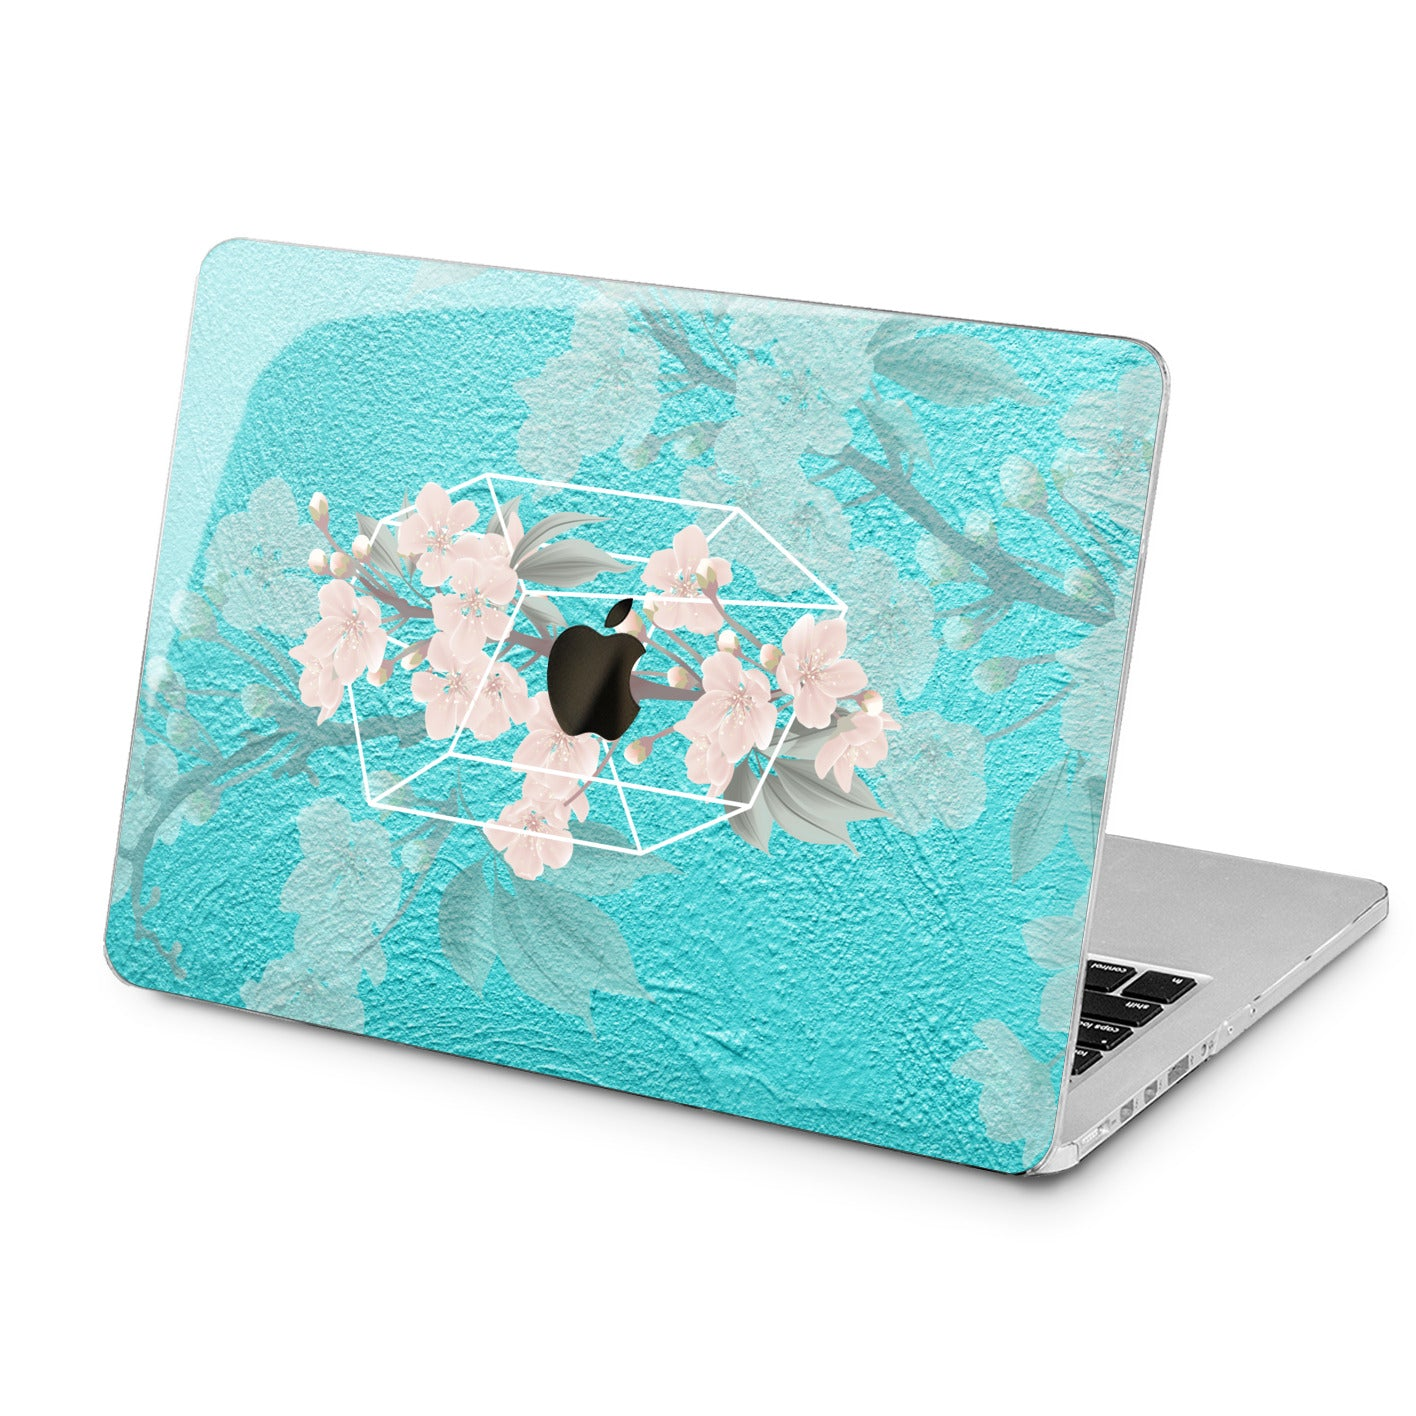 Lex Altern Lex Altern Cherry Bloom Case for your Laptop Apple Macbook.